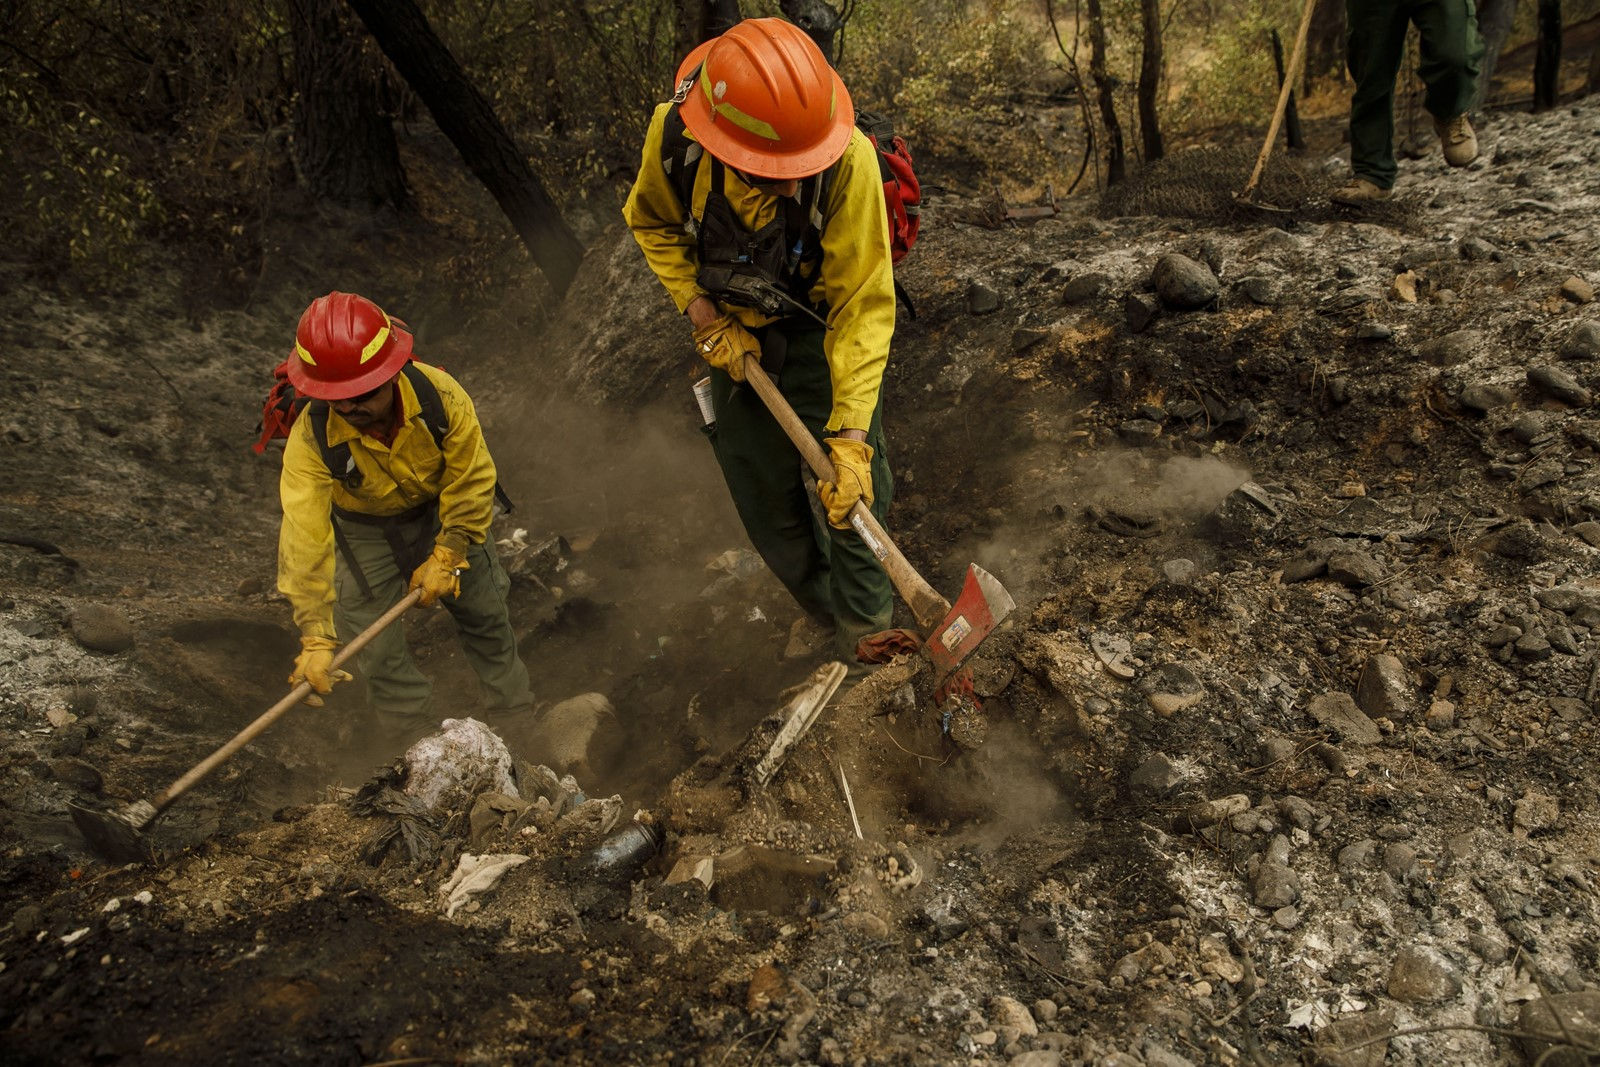 Firefighters from R&R Contracting in Oregon perform mop-up work on the Carr fire near Redding, California. A 2007 report by the American Immigration Council found that a significant number of wildland firefighters were immigrants, mostly Mexican-born men. — Photograph: Marcus Yam/Los Angeles Times.